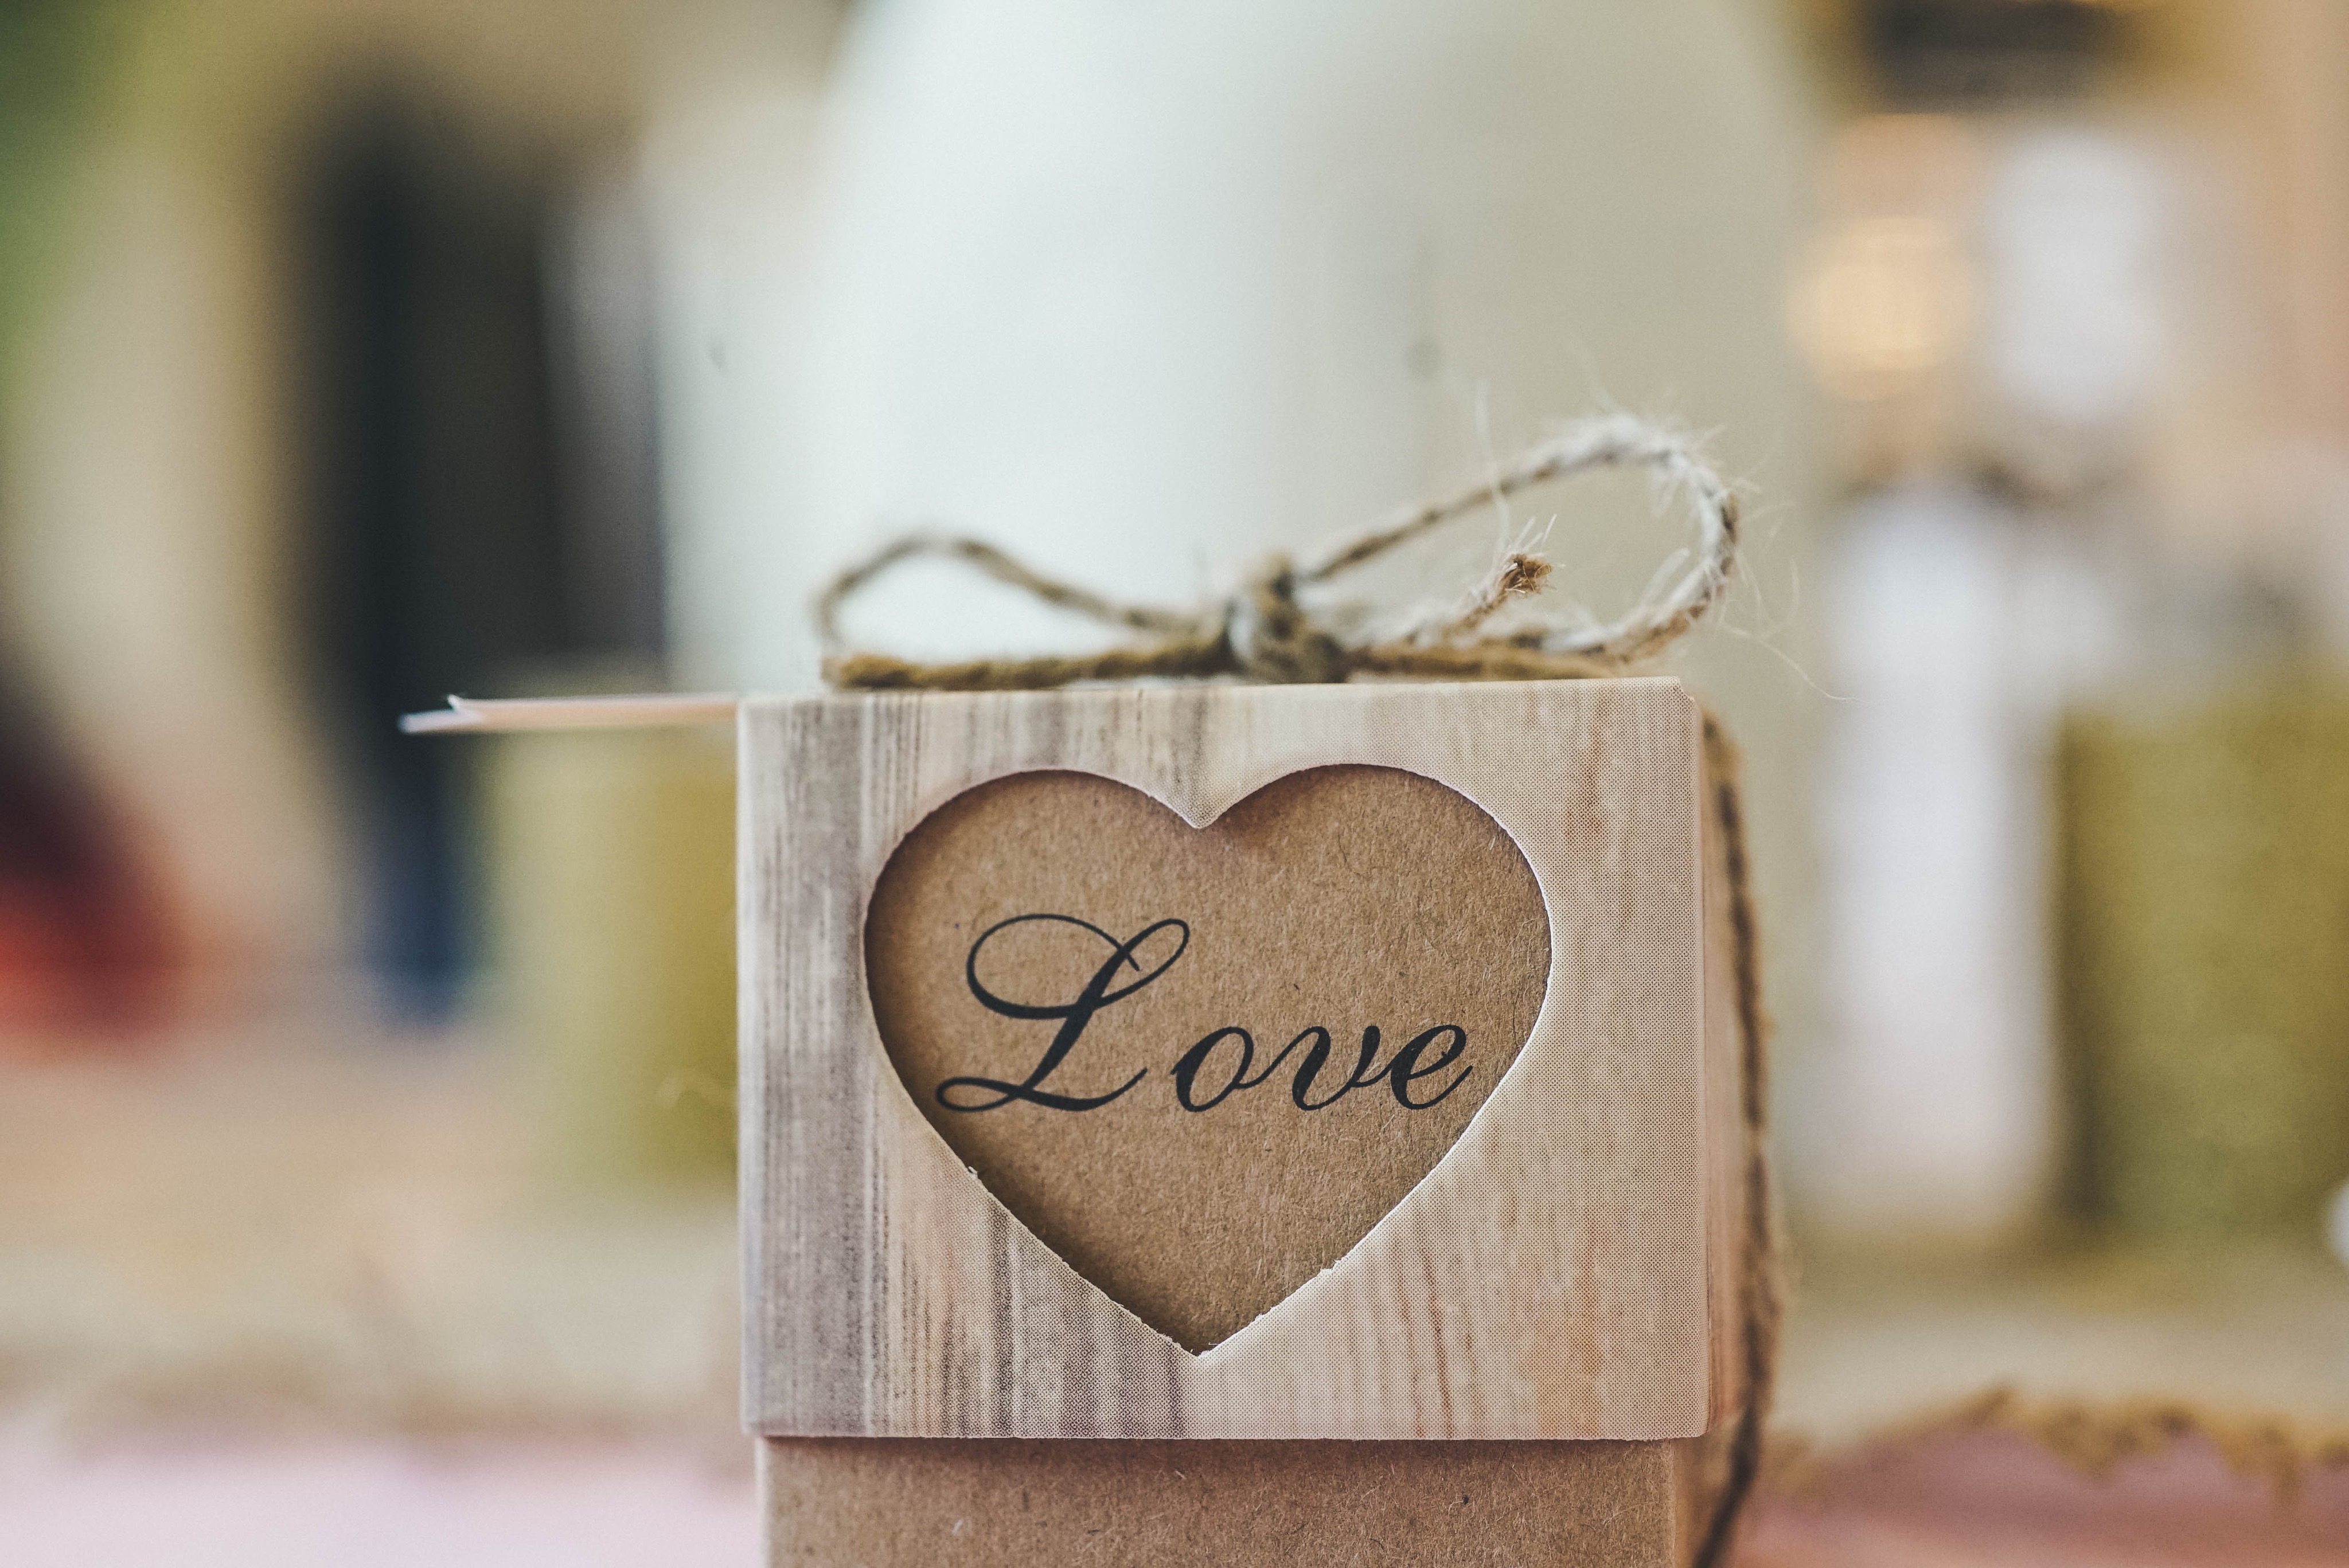 133778 download wallpaper Love, Heart, Present, Gift, Box, Capsule screensavers and pictures for free